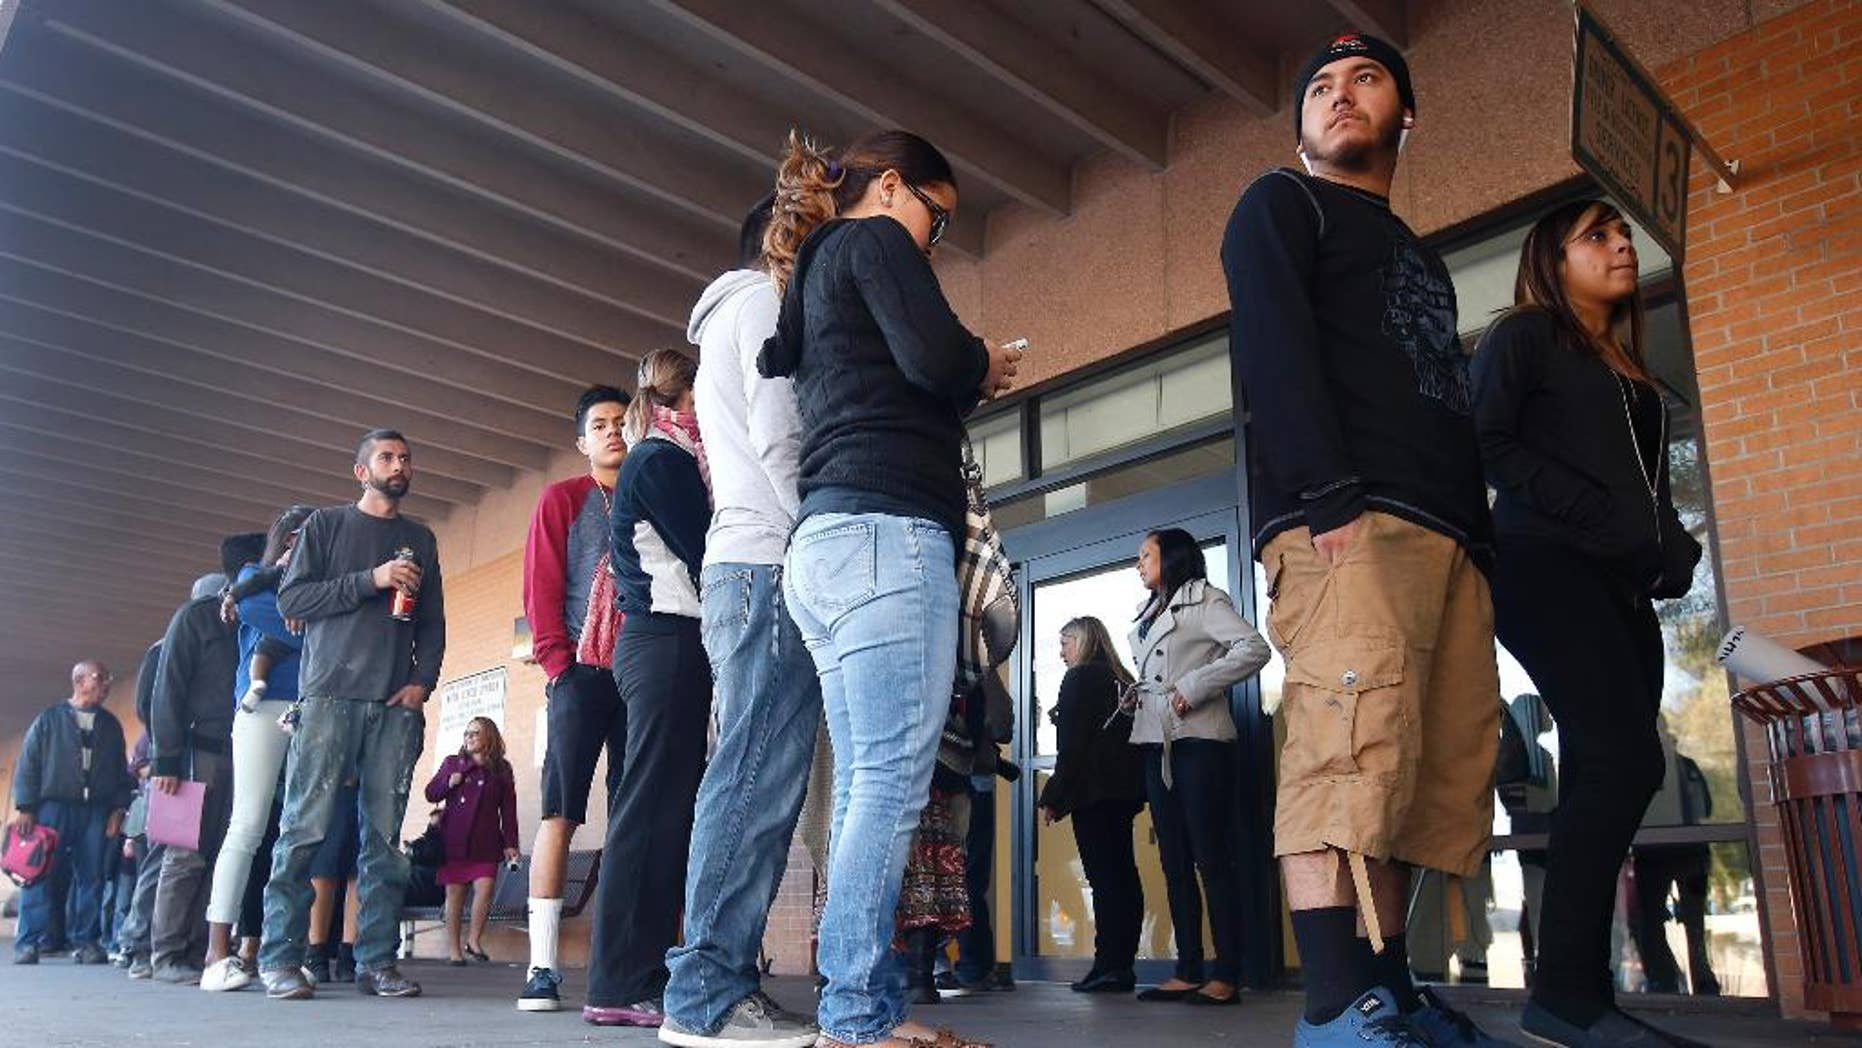 FILE - This Dec. 22, 2014 file photo a line stretches outside an a Arizona Department of Transportation Motor Vehicle Division office, begin pursuing Arizona driver's licenses. Only a small number of young immigrants who qualify for Arizona driver's licenses after a judge overturned a state ban have actually obtained licenses. Immigrant advocates say not enough people know they qualify. (AP Photo/Ross D. Franklin,File)